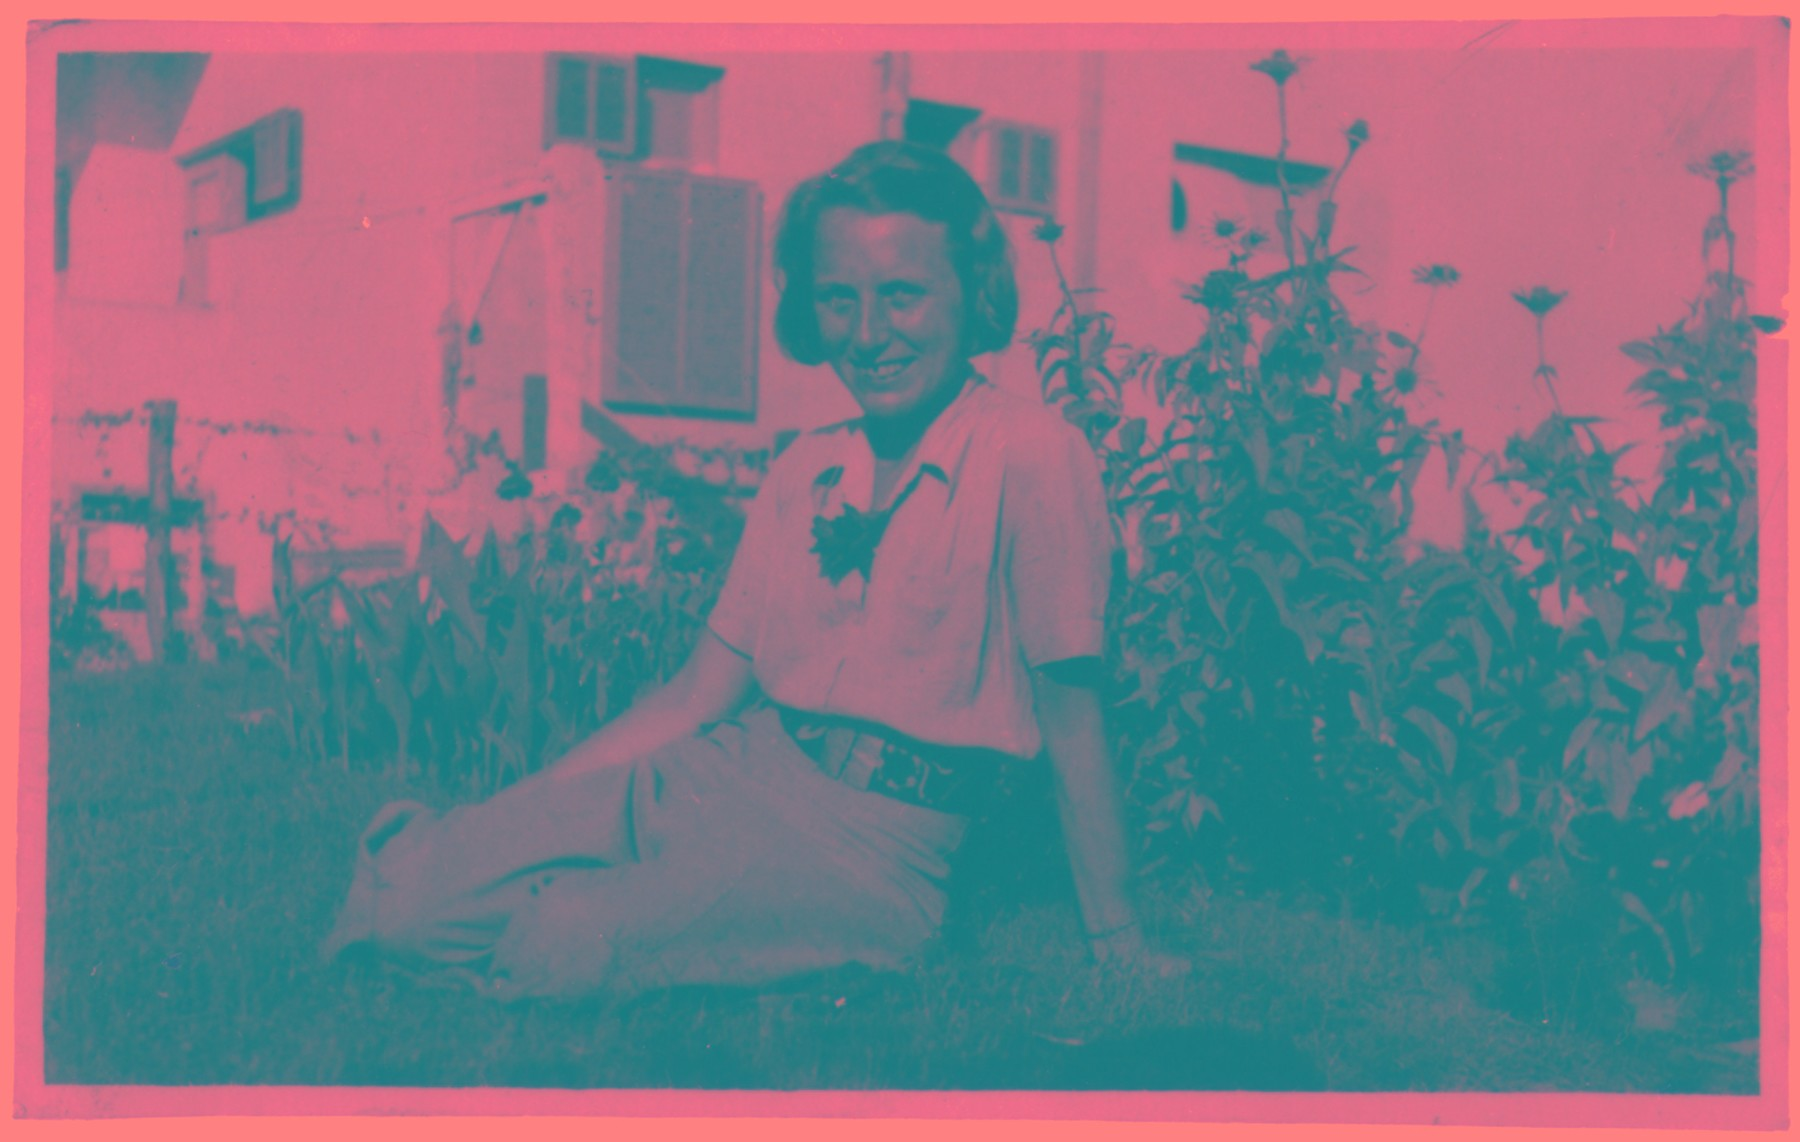 Portrait of Isabella Wiener Ronen seated on the lawn in front of a flower bed.